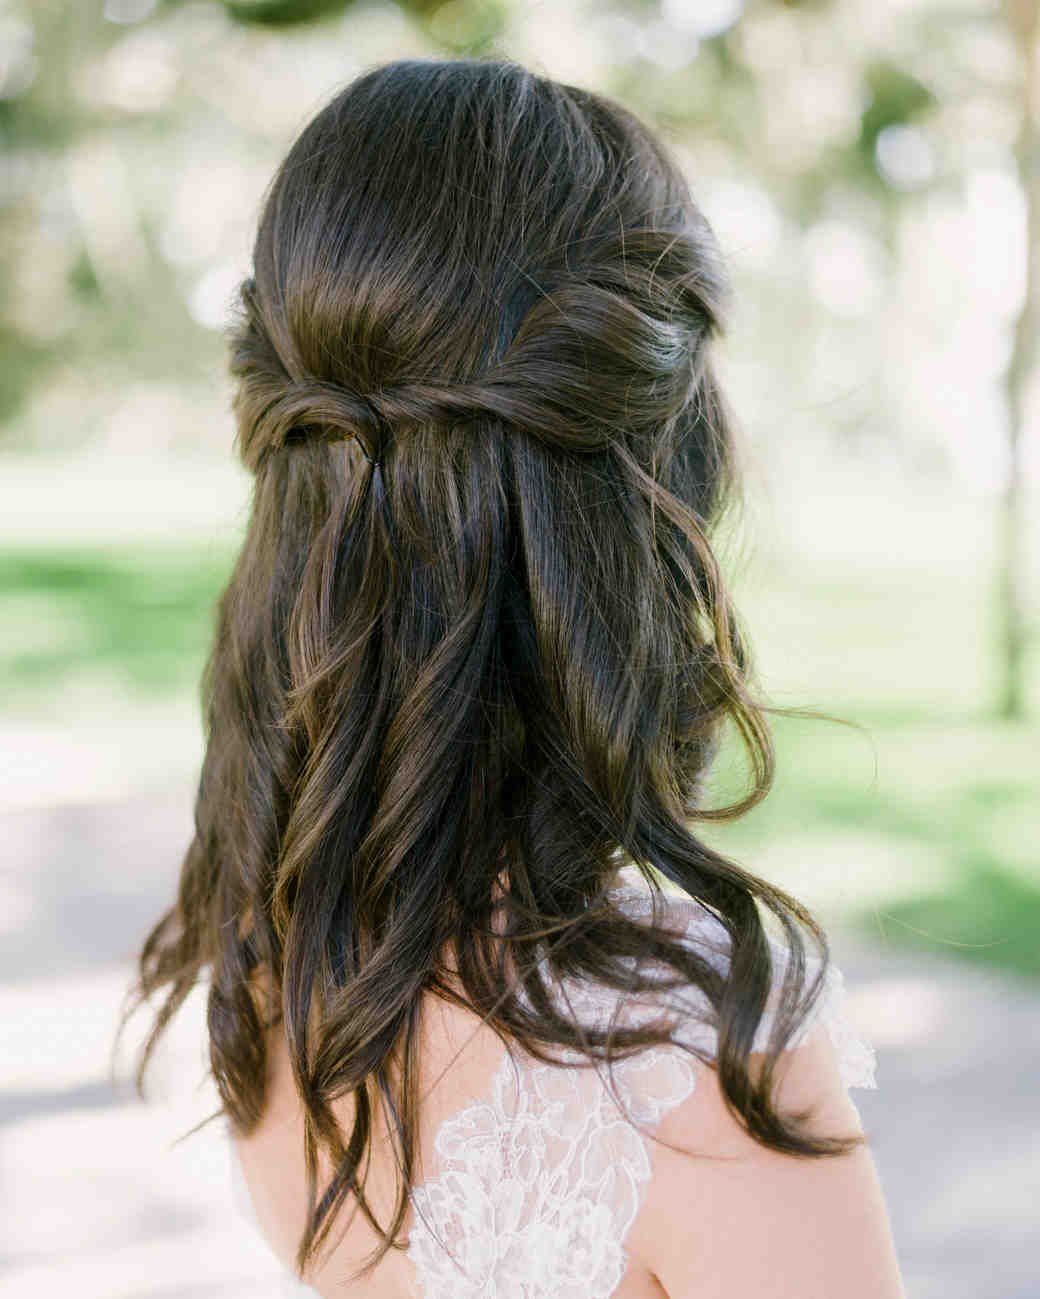 Wedding Hairstyle Simple: 55 Simple Wedding Hairstyles That Prove Less Is More